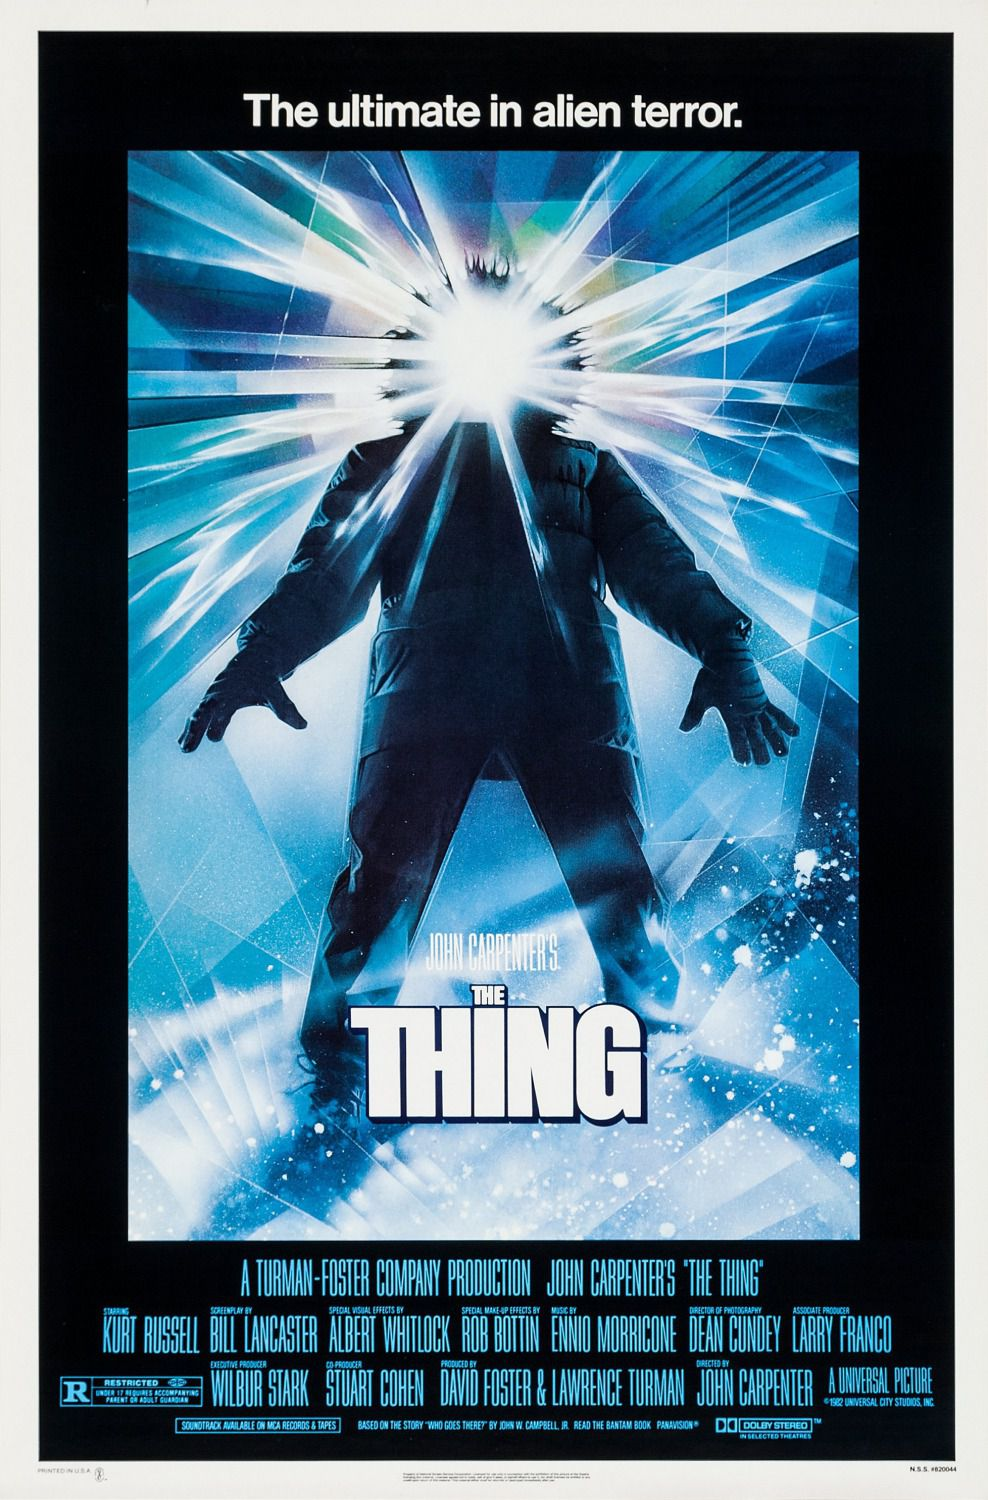 La Cosa - The Thing (1982)